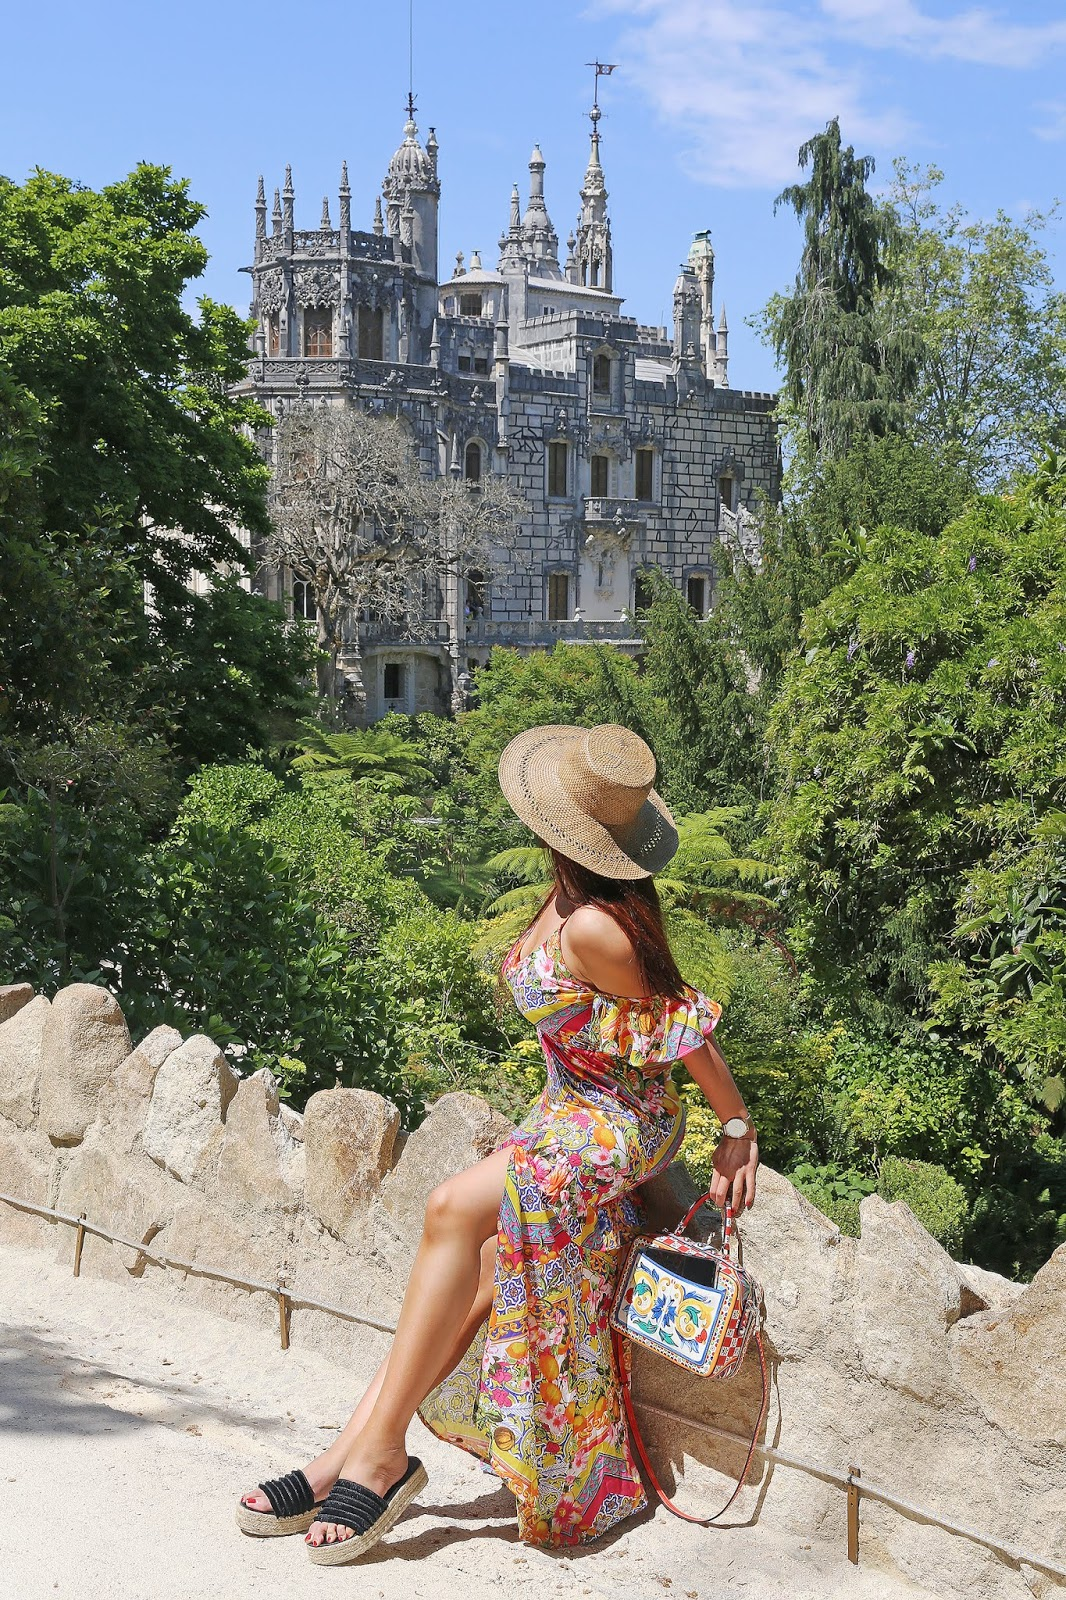 When in Lisbon you must make a day trip to see the famous castles of Sintra. Here are the best palaces & castles to visit in Sintra, Portugal.